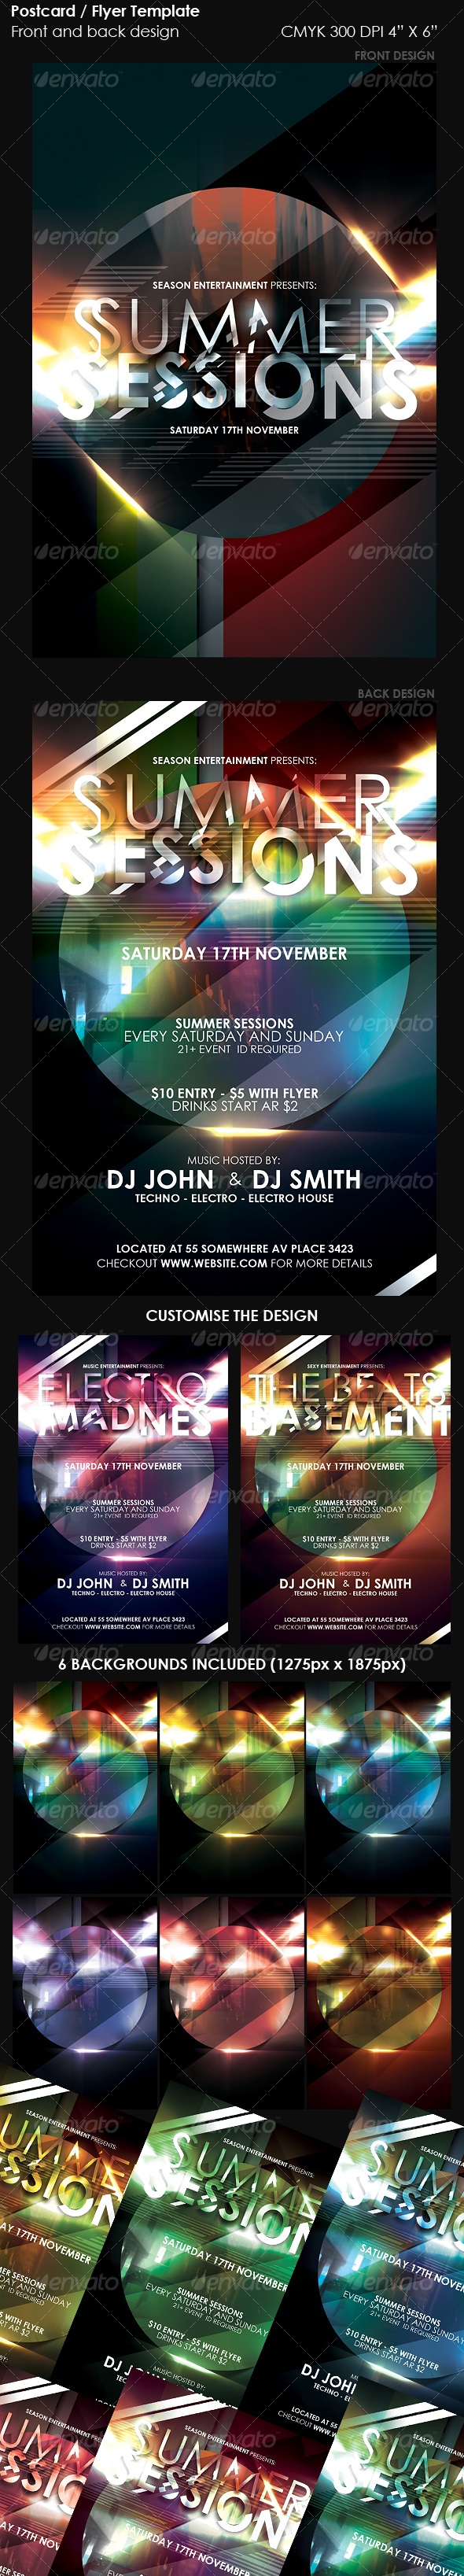 Flyer / Postcard Template. - Clubs & Parties Events